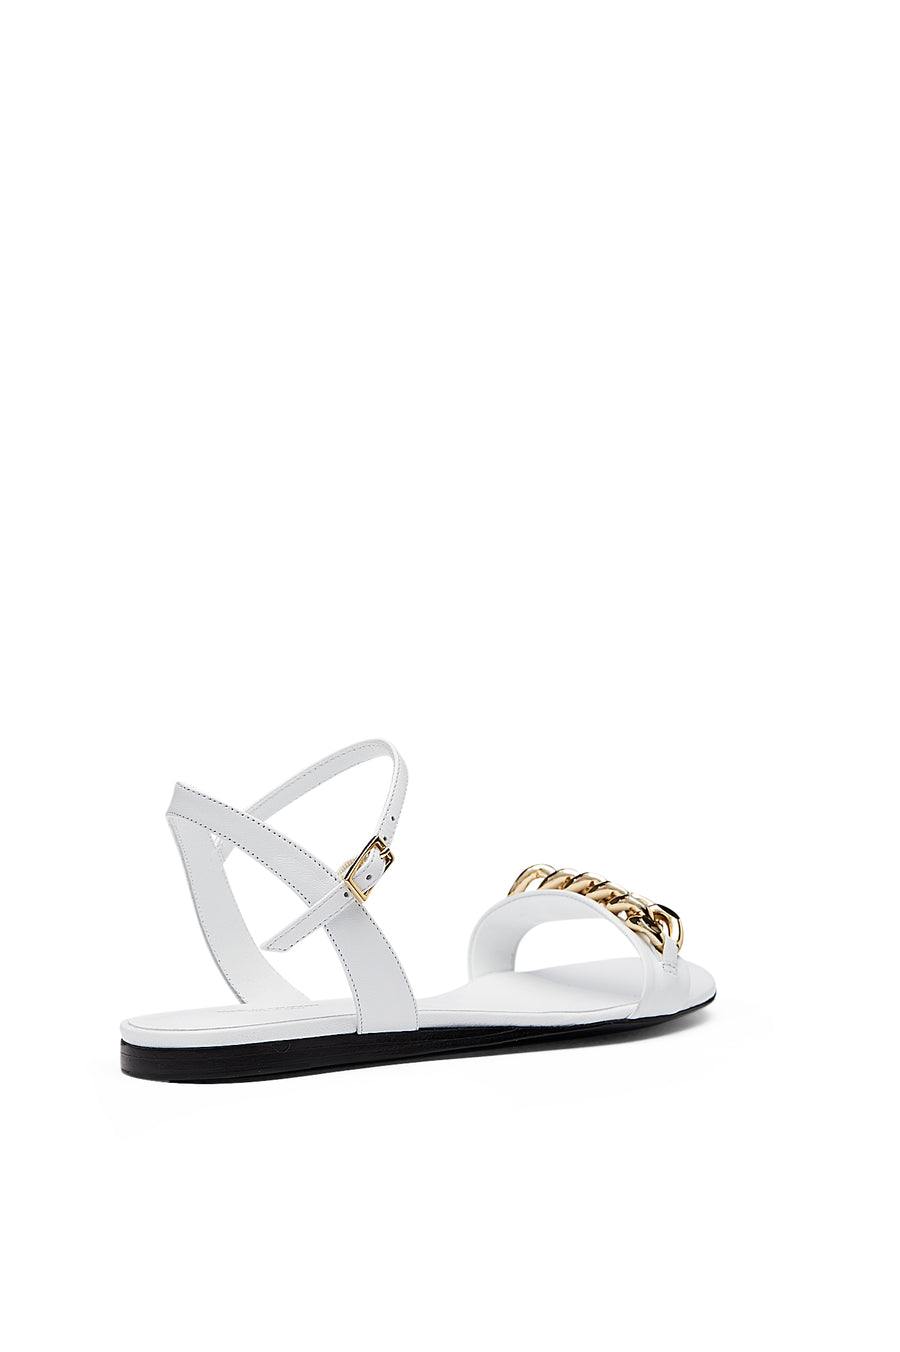 CHAIN SANDAL BIANCO, BIANCO color